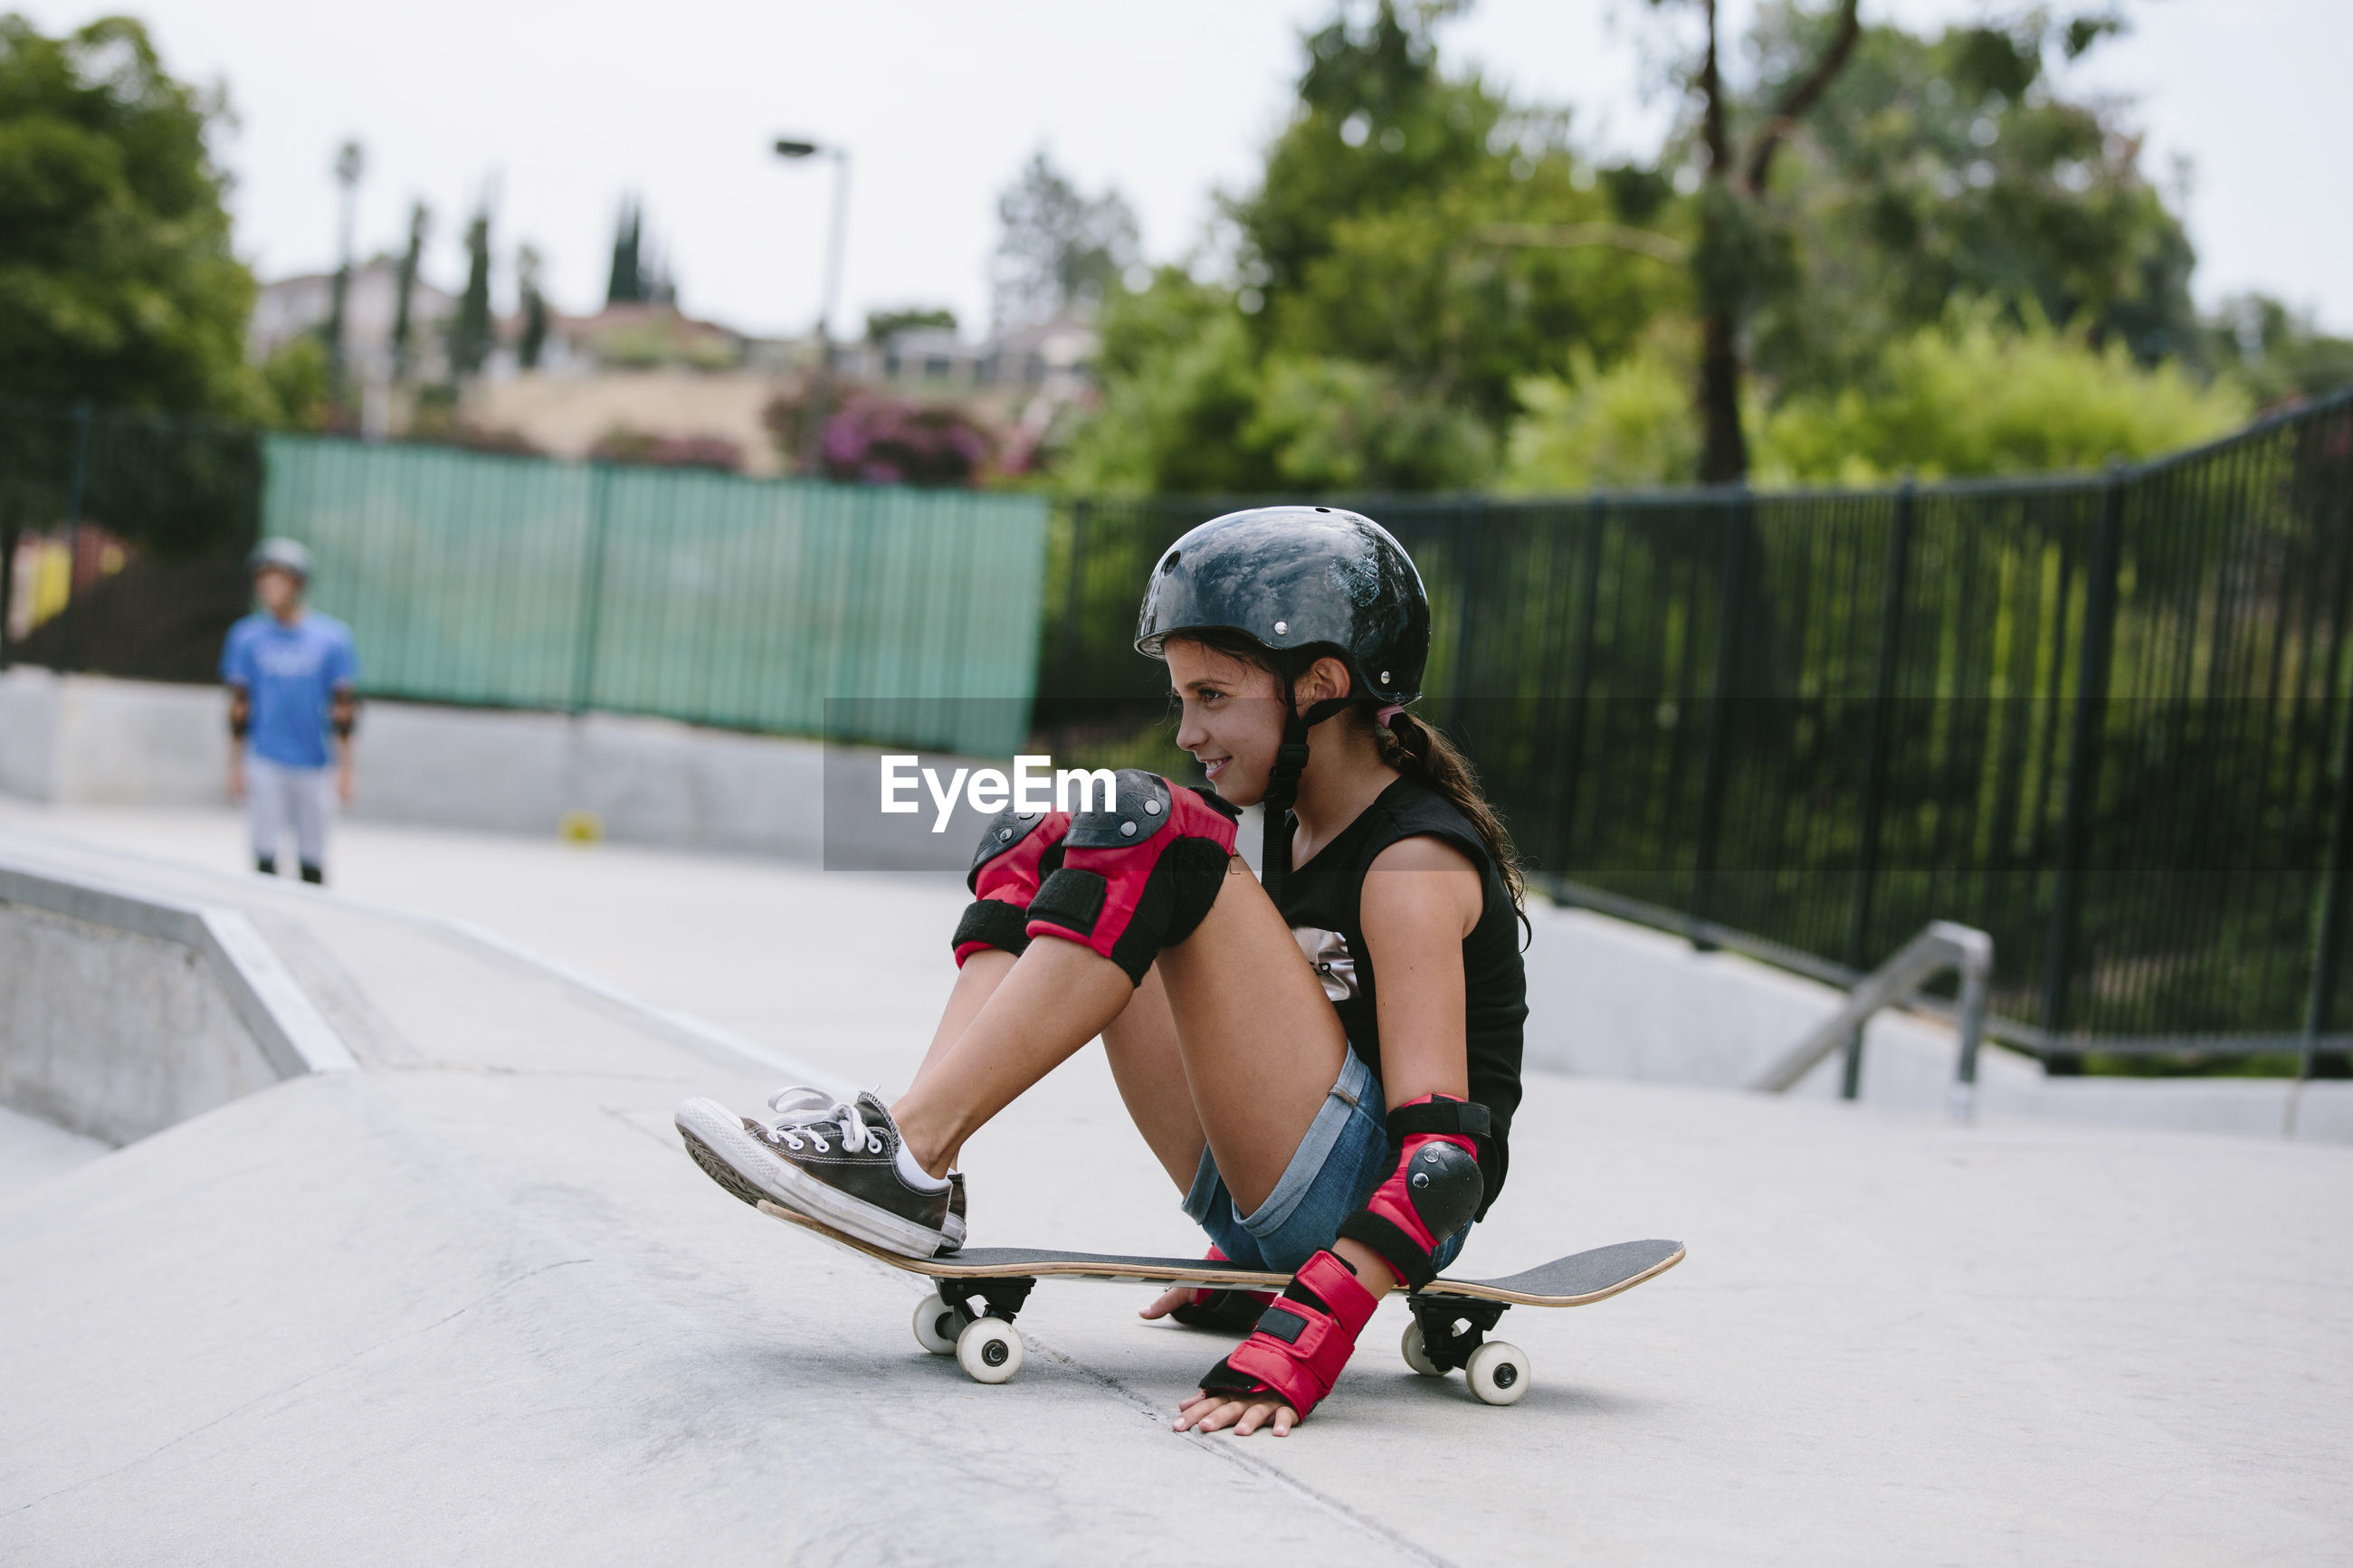 HIGH ANGLE VIEW OF WOMAN AND SKATEBOARD ON STREET